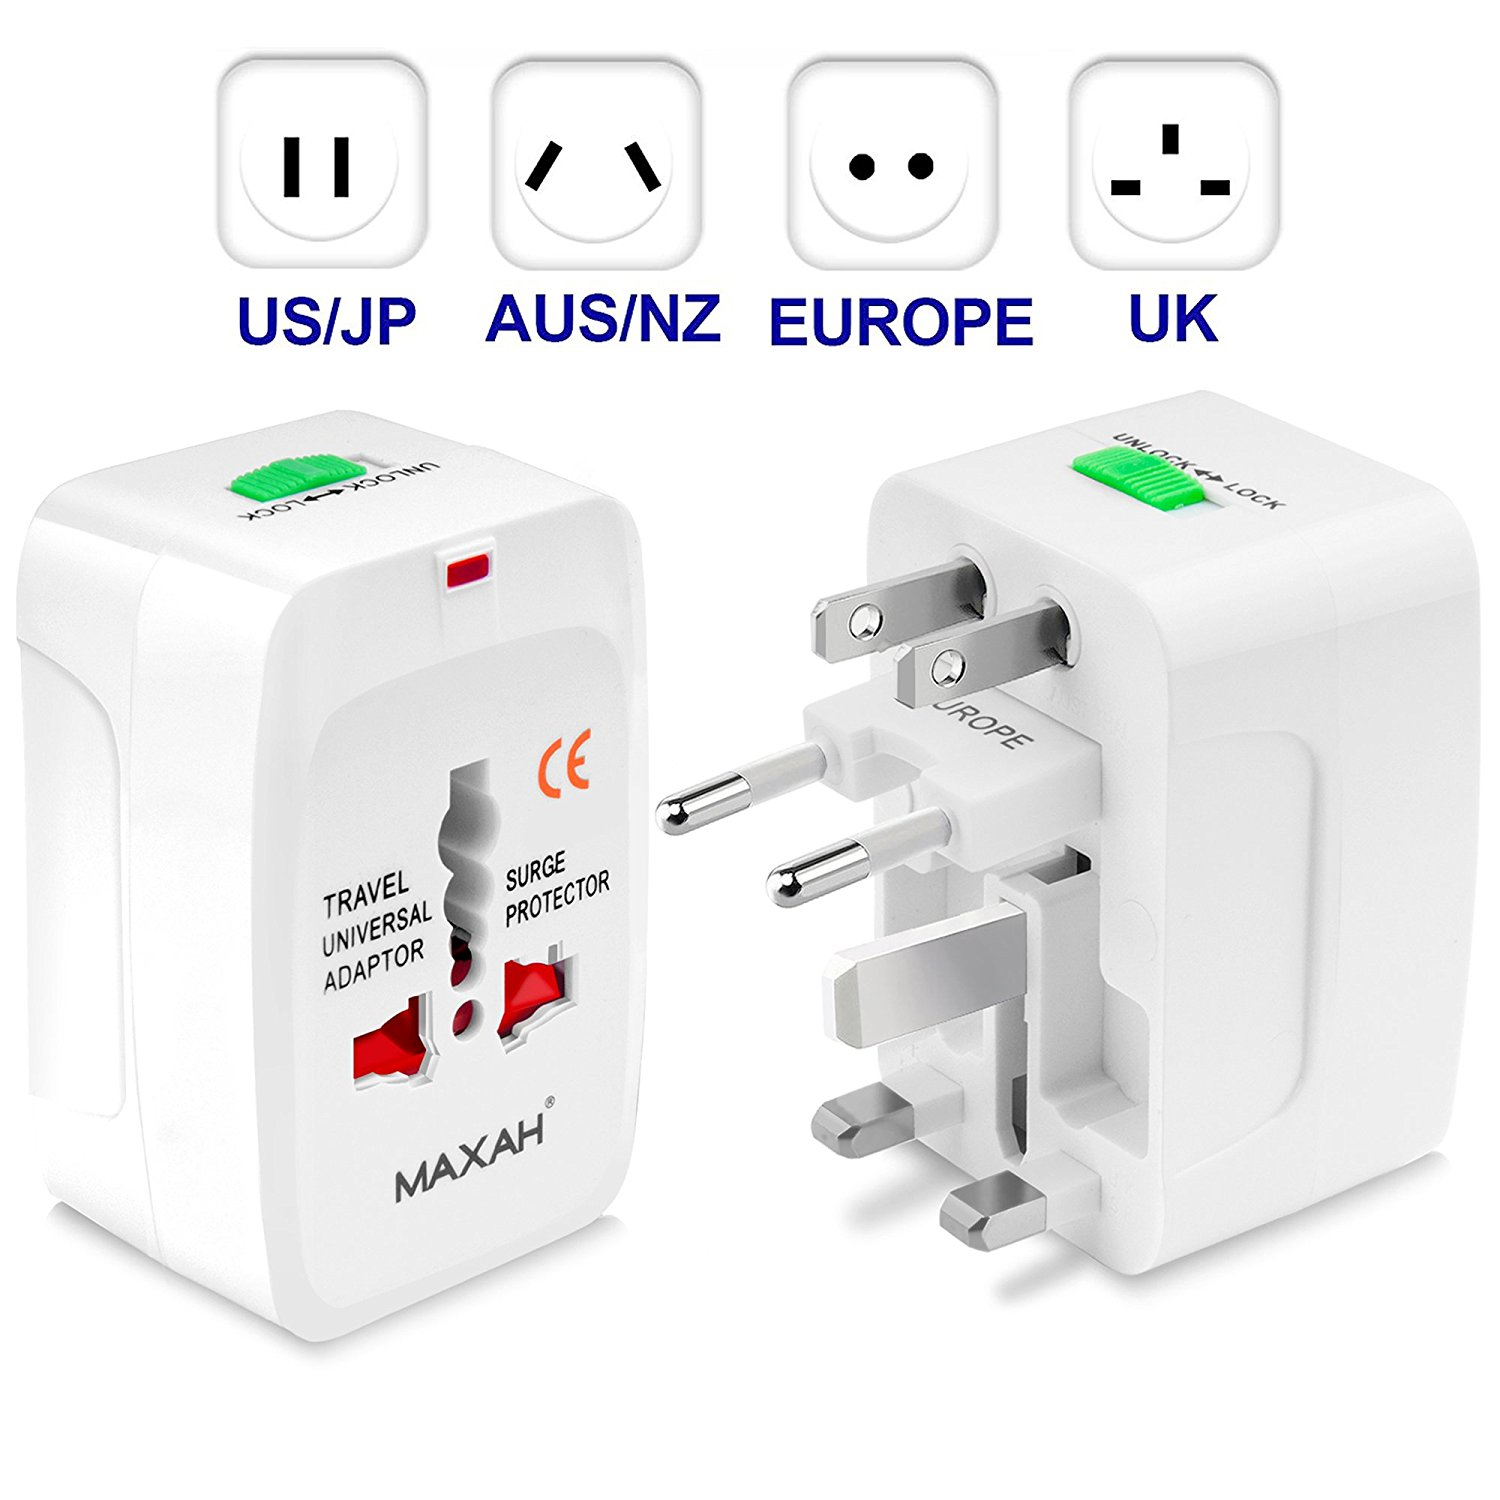 Mettle Universal Travel Plug Adaptor, All in One Worldwide Universal Wall Charger AC Power Plug for EU US UK AU   White